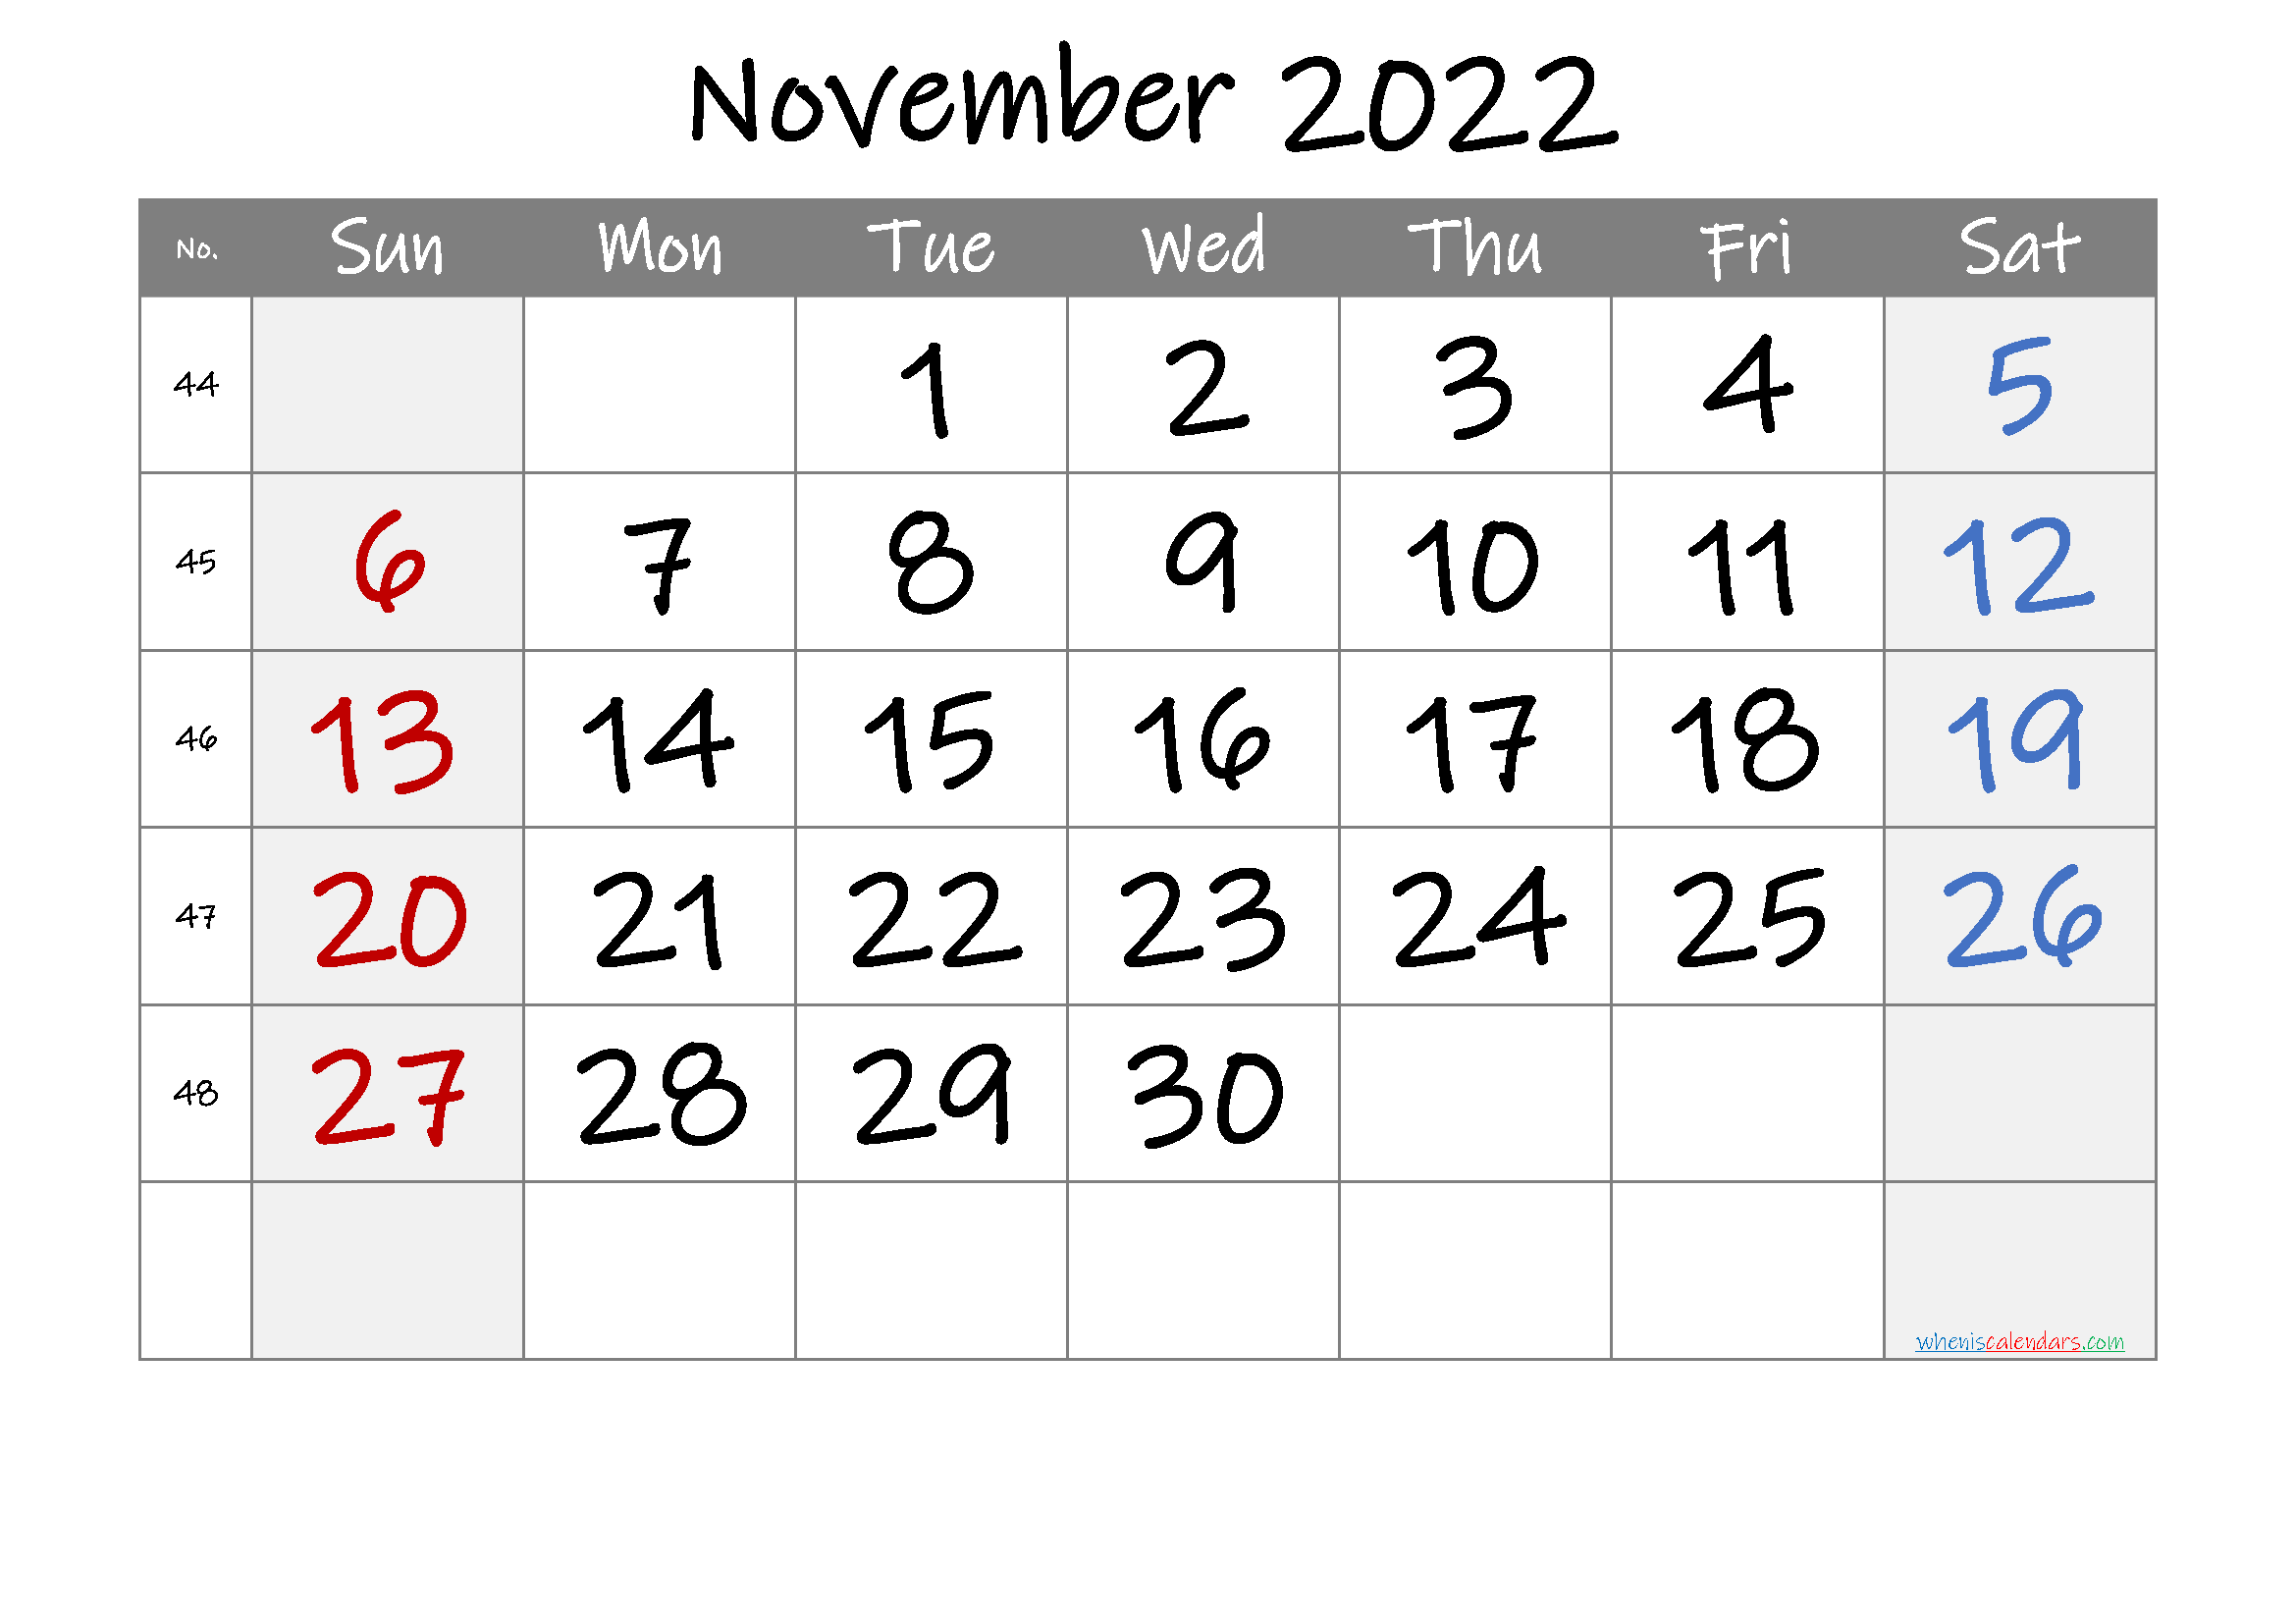 November 2022 Printable Calendar with Week Numbers